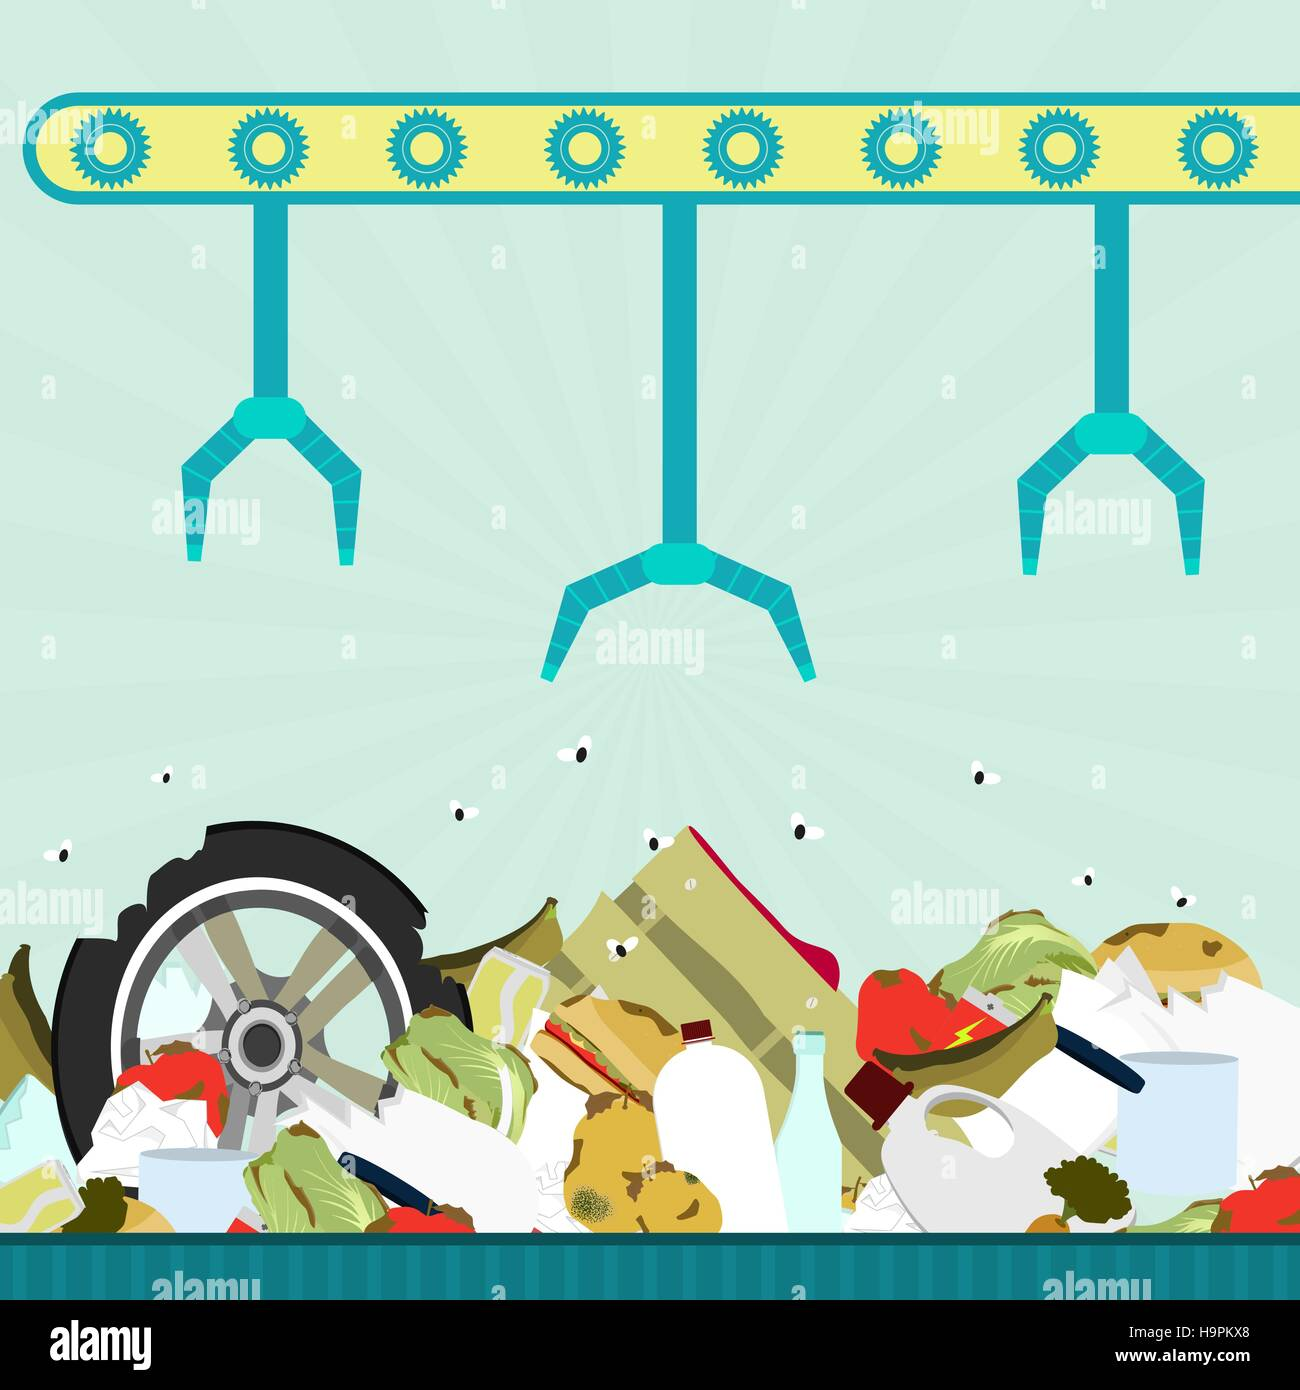 Machine (conveyor) with grippers carrying garbage in landfill. Garbage contains tires, rotten foods, plastics, glass - Stock Vector